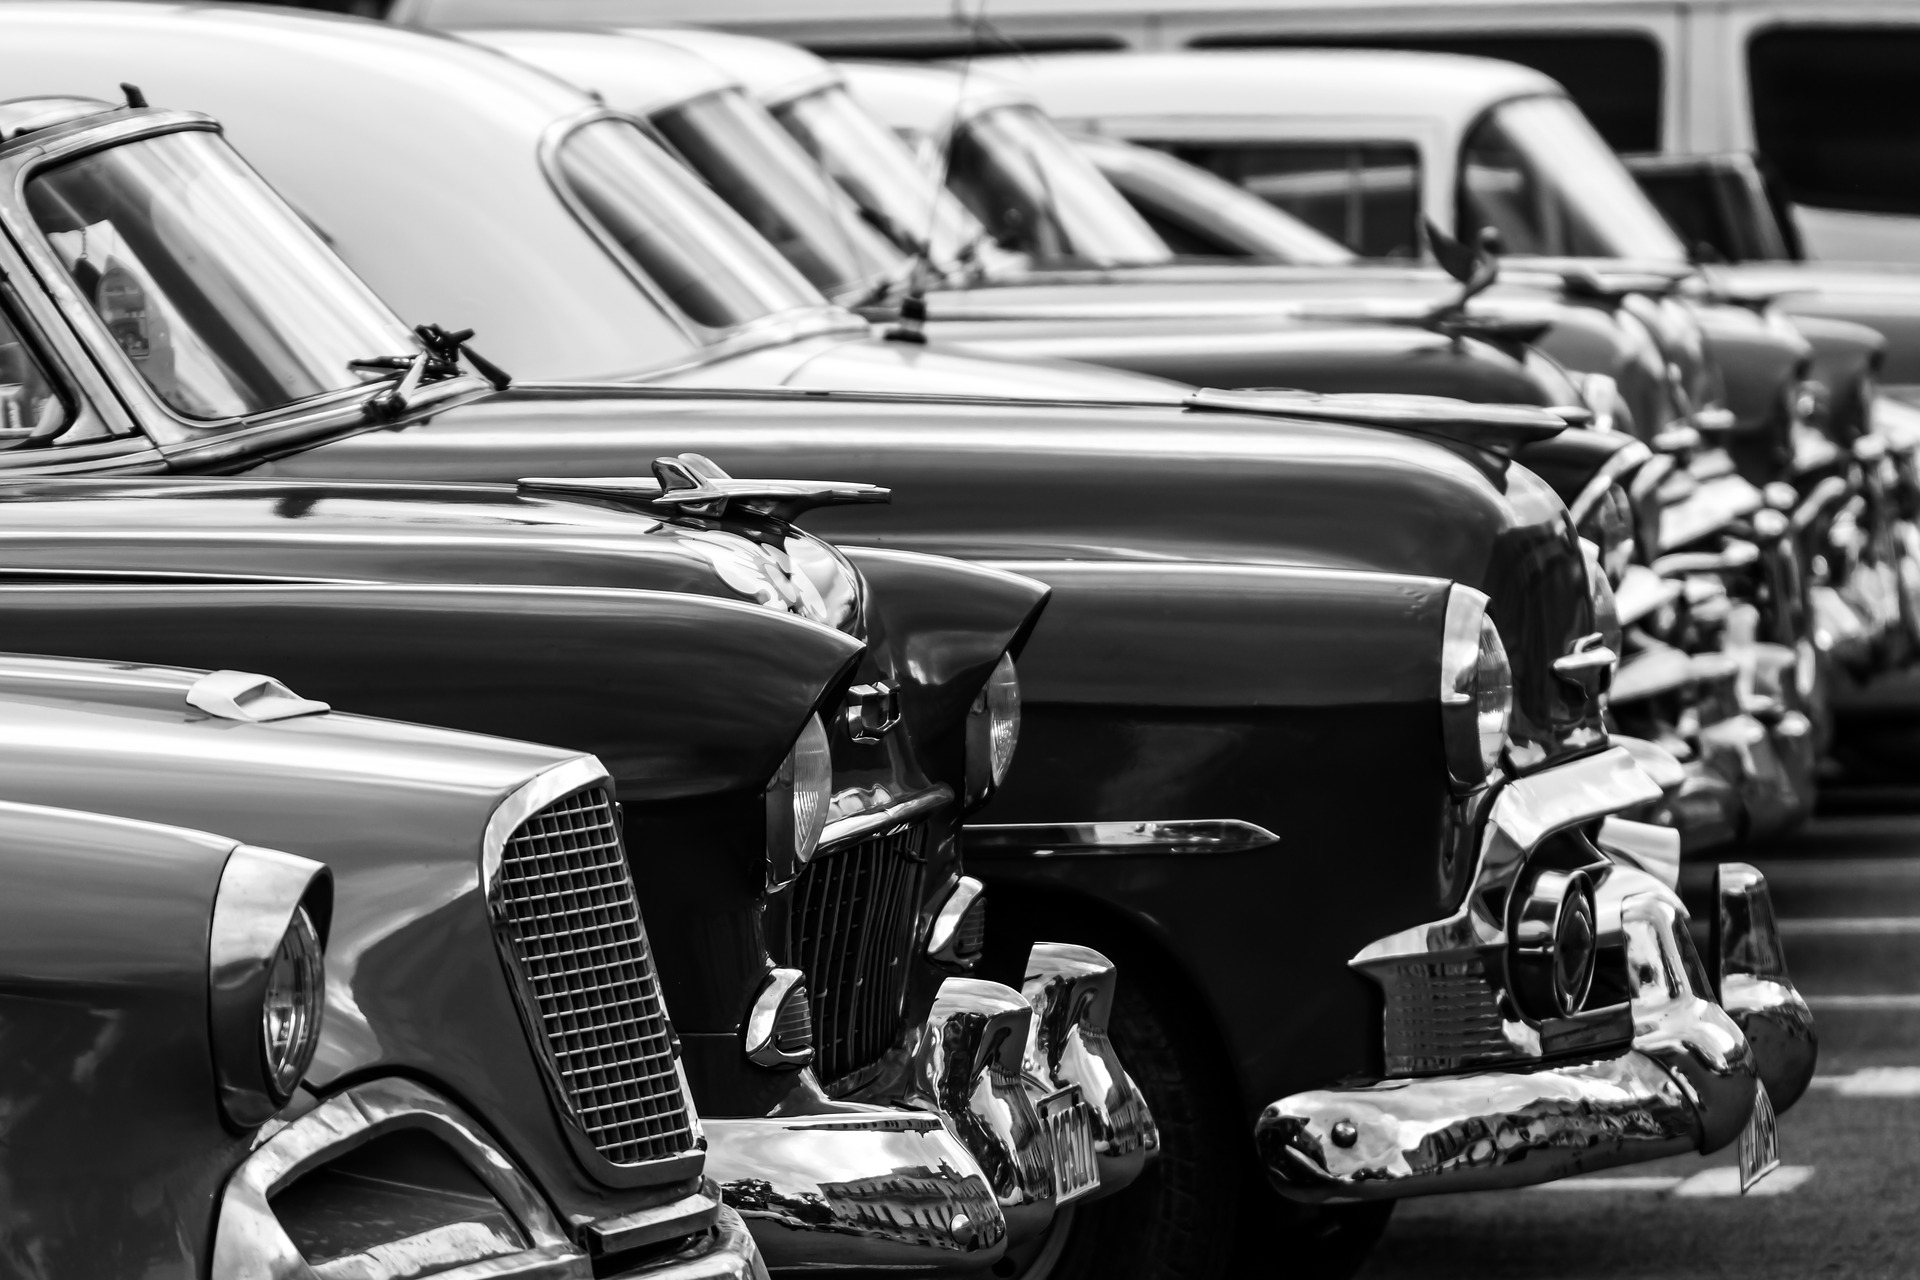 Is Motor Trade Insurance Expensive as a Hobbyist?